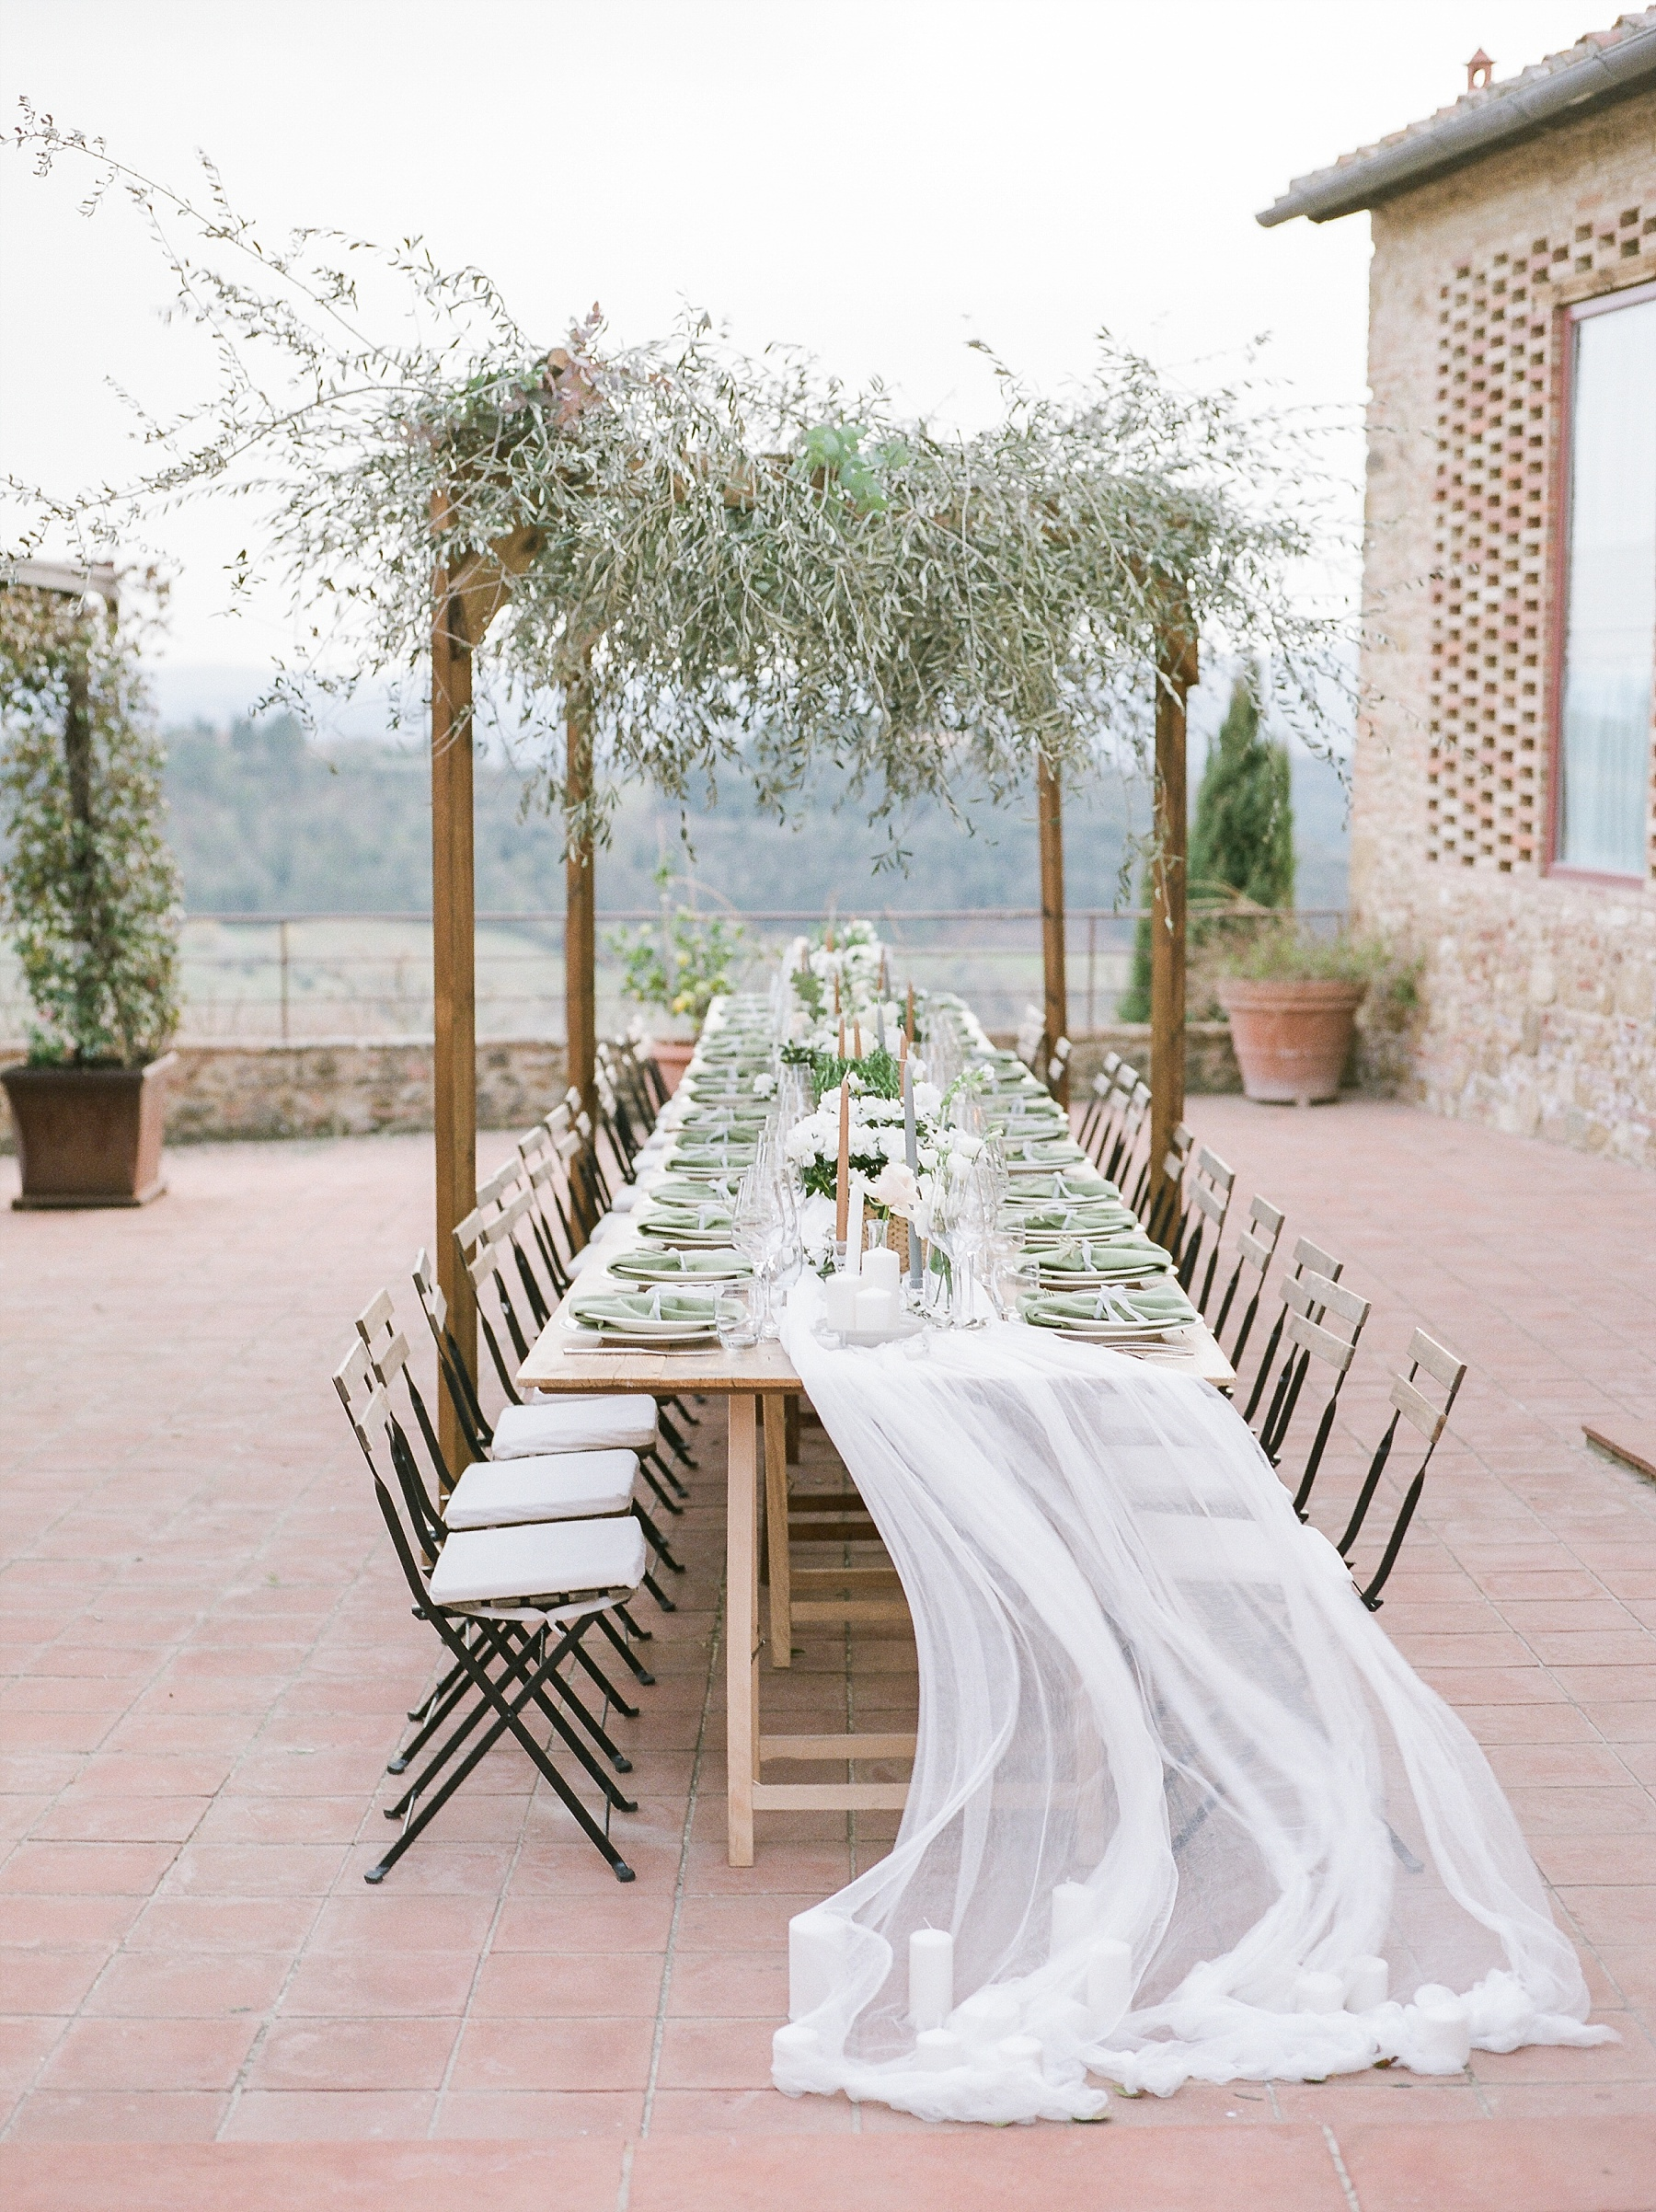 All White Destination Wedding in the Hills of Tuscany Italy at Estate Borgo Petrognano by Kelsi Kliethermes Photography_0066.jpg